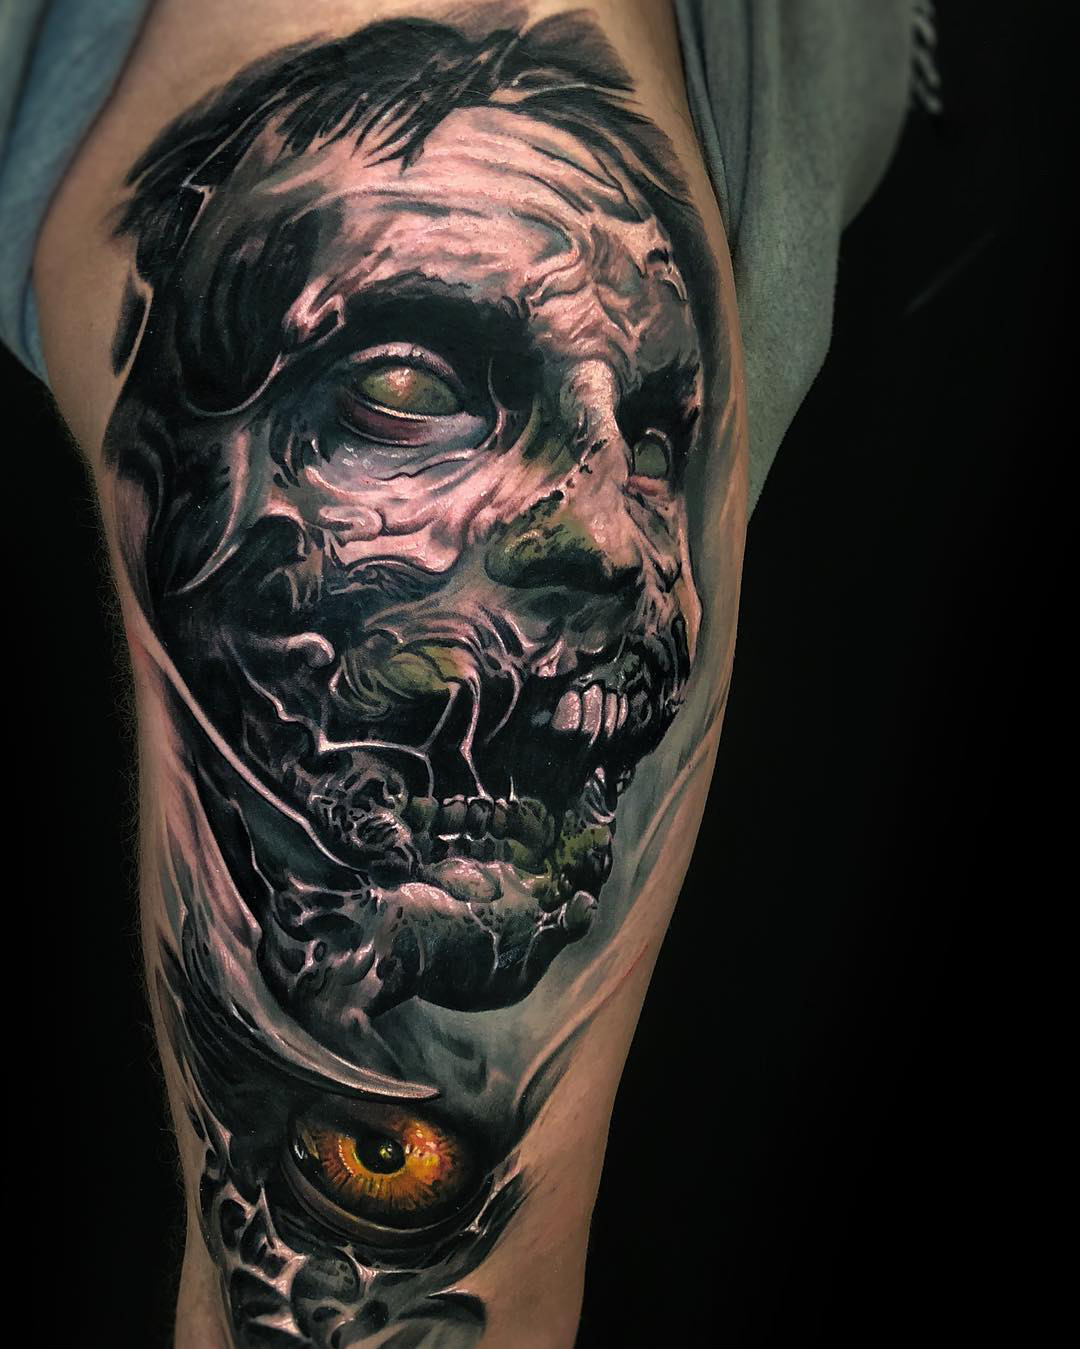 Horrors Tattoo - Zombies